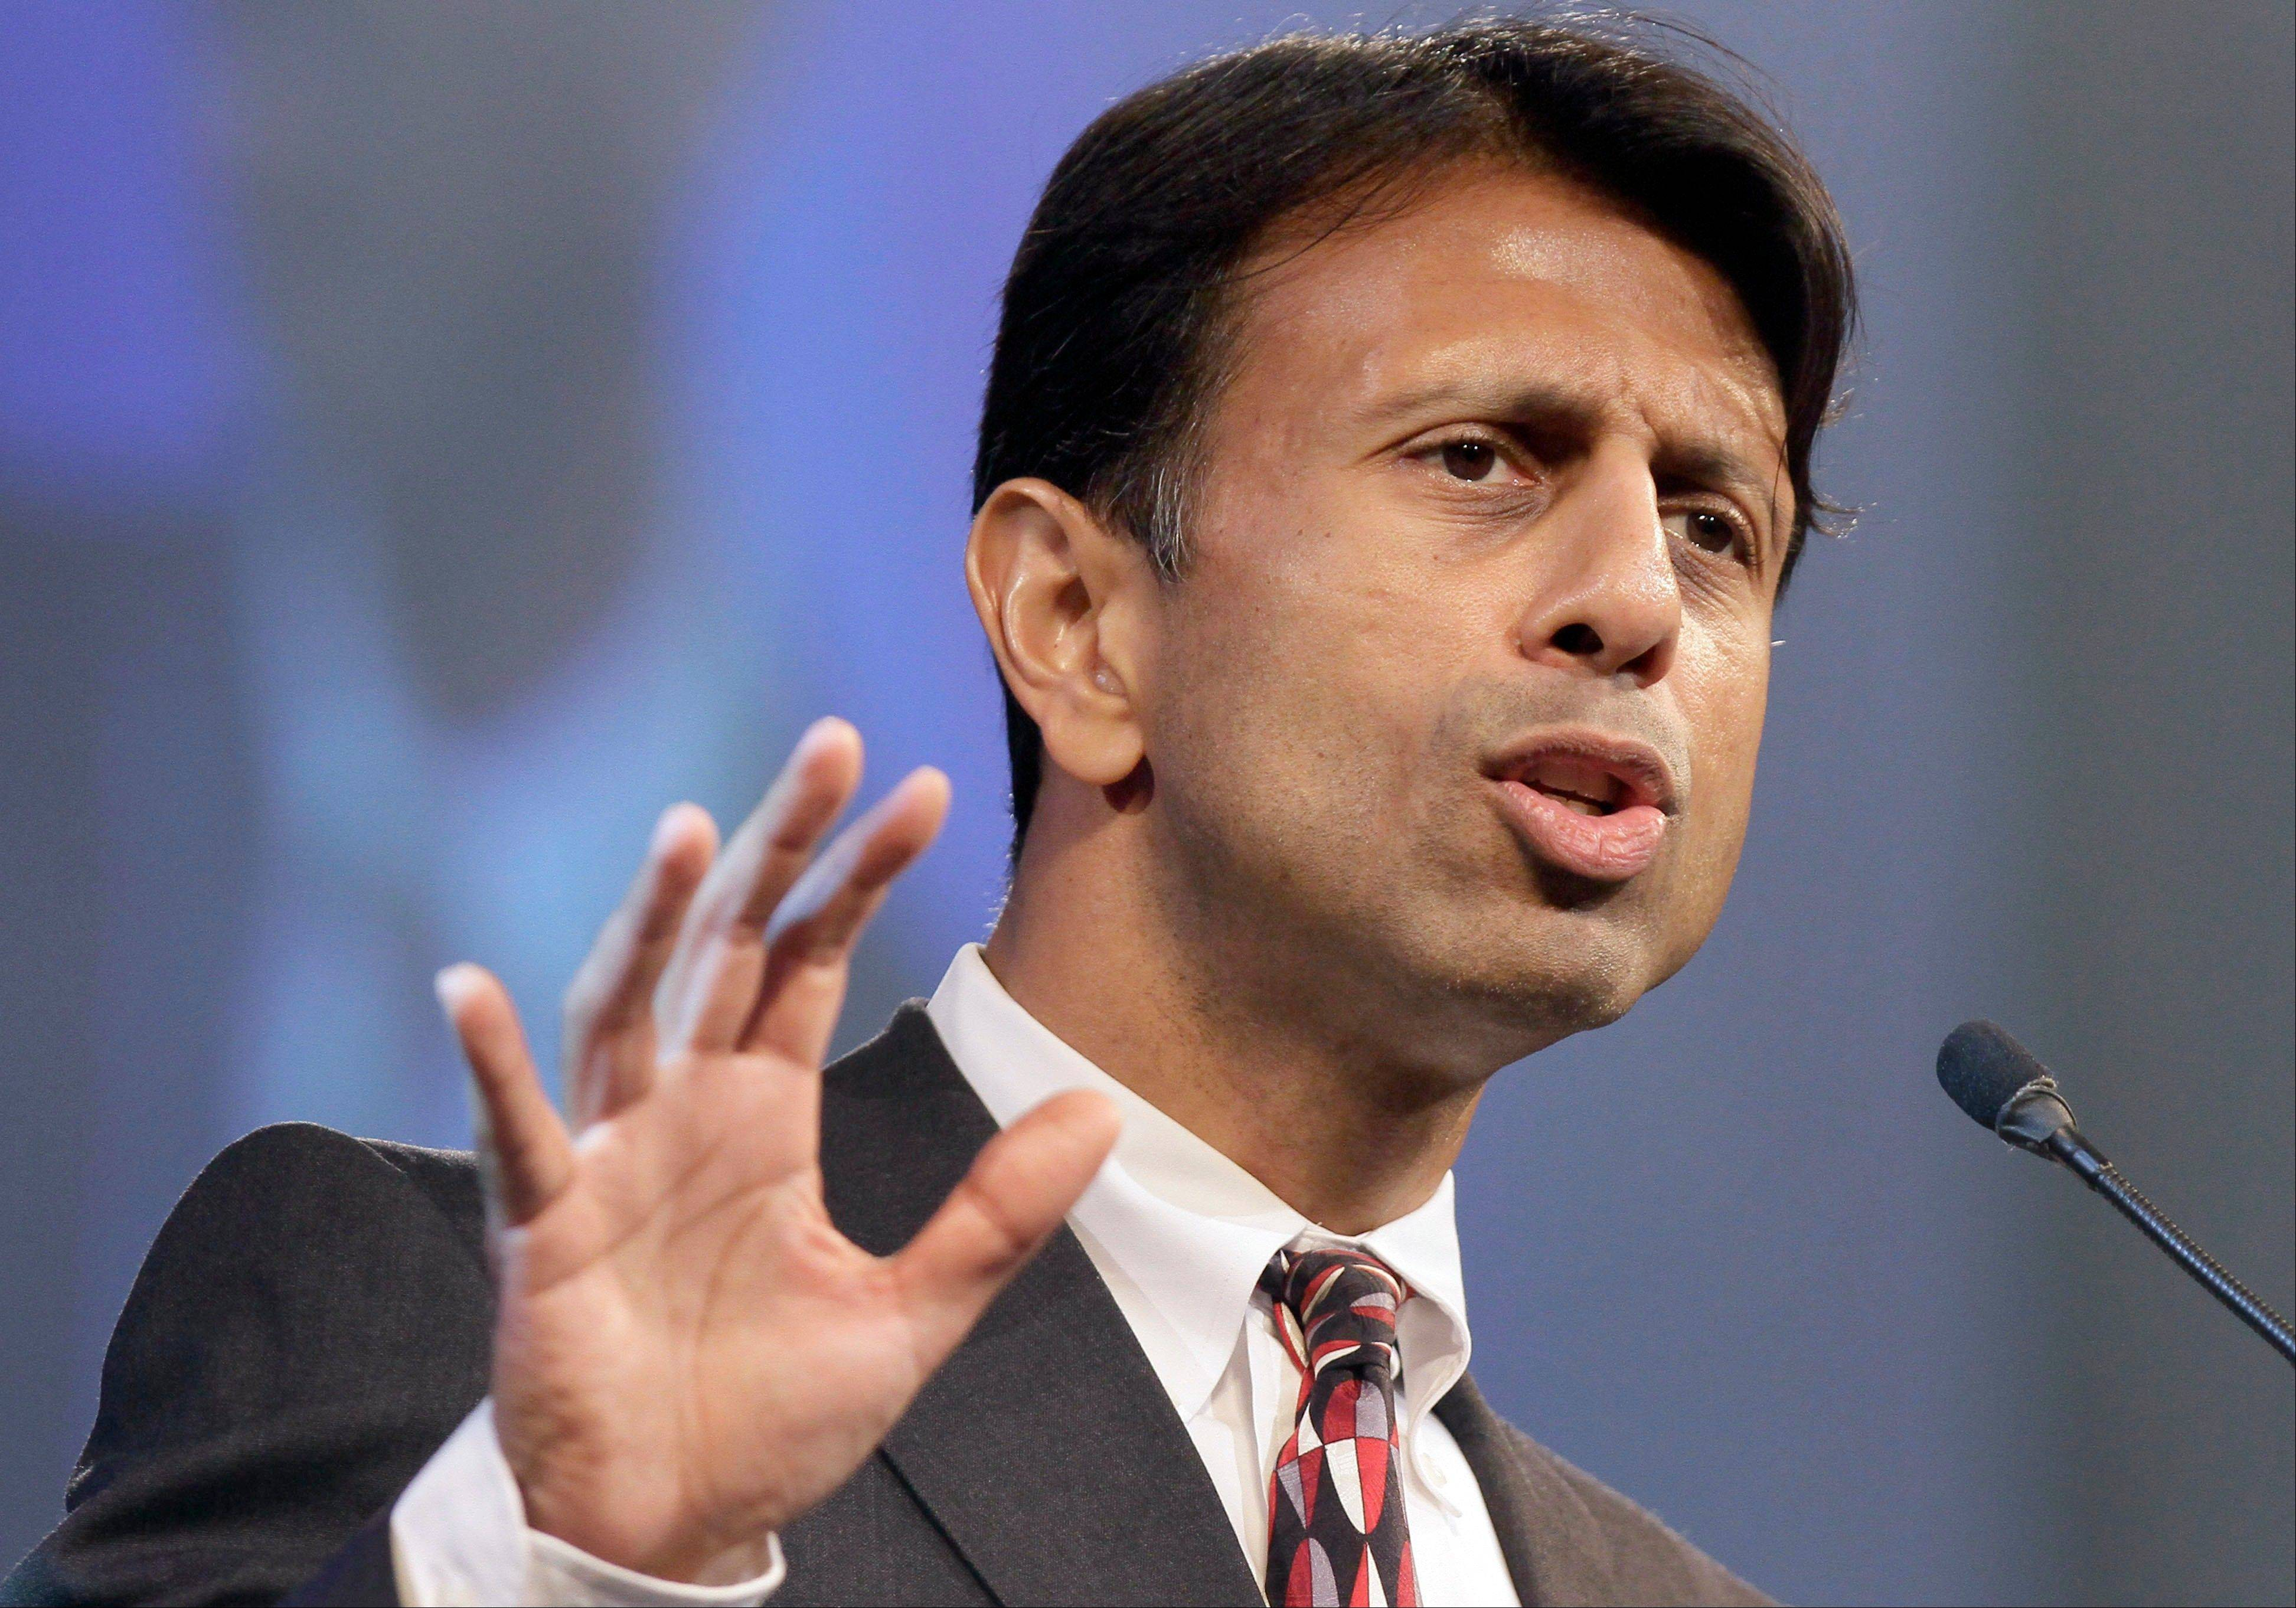 Louisiana Gov. Bobby Jindal is calling on the Republican Party to �recalibrate the compass of conservatism.�